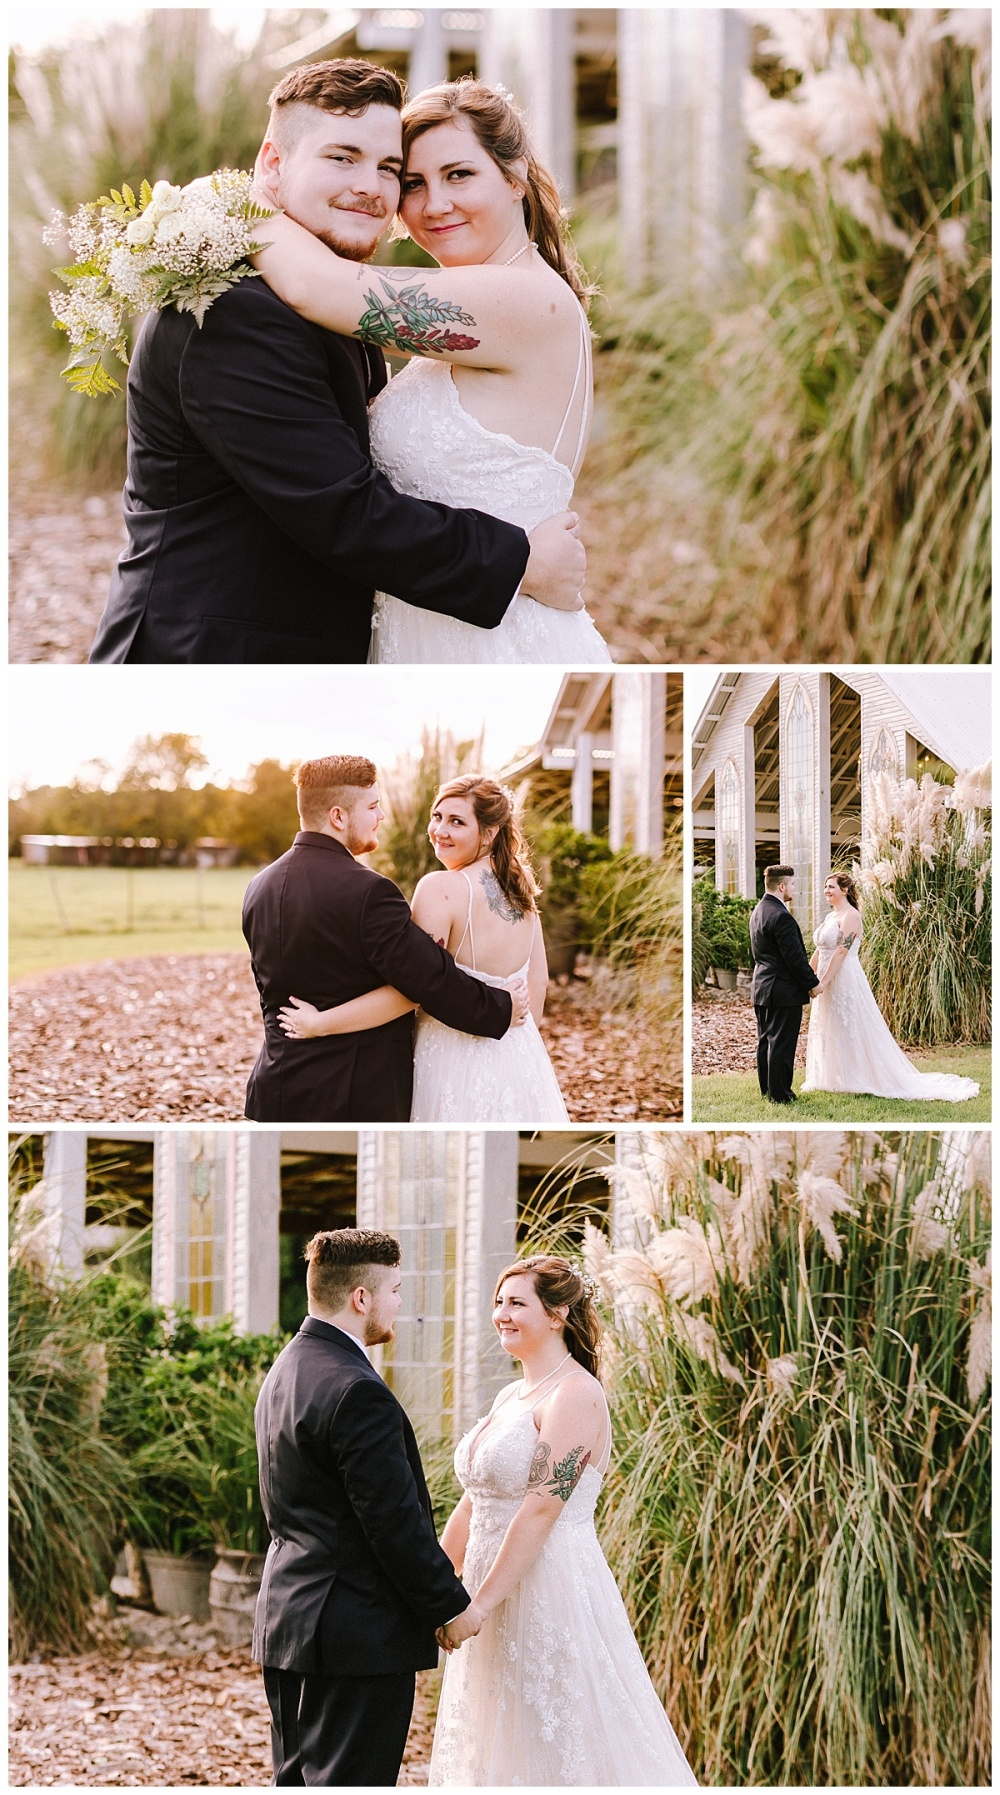 Texas-Wedding-Photographer-Gruene-Estate-Open-Air-Chapel-Carly-Barton-Photography-Katie-Nic_0051.jpg